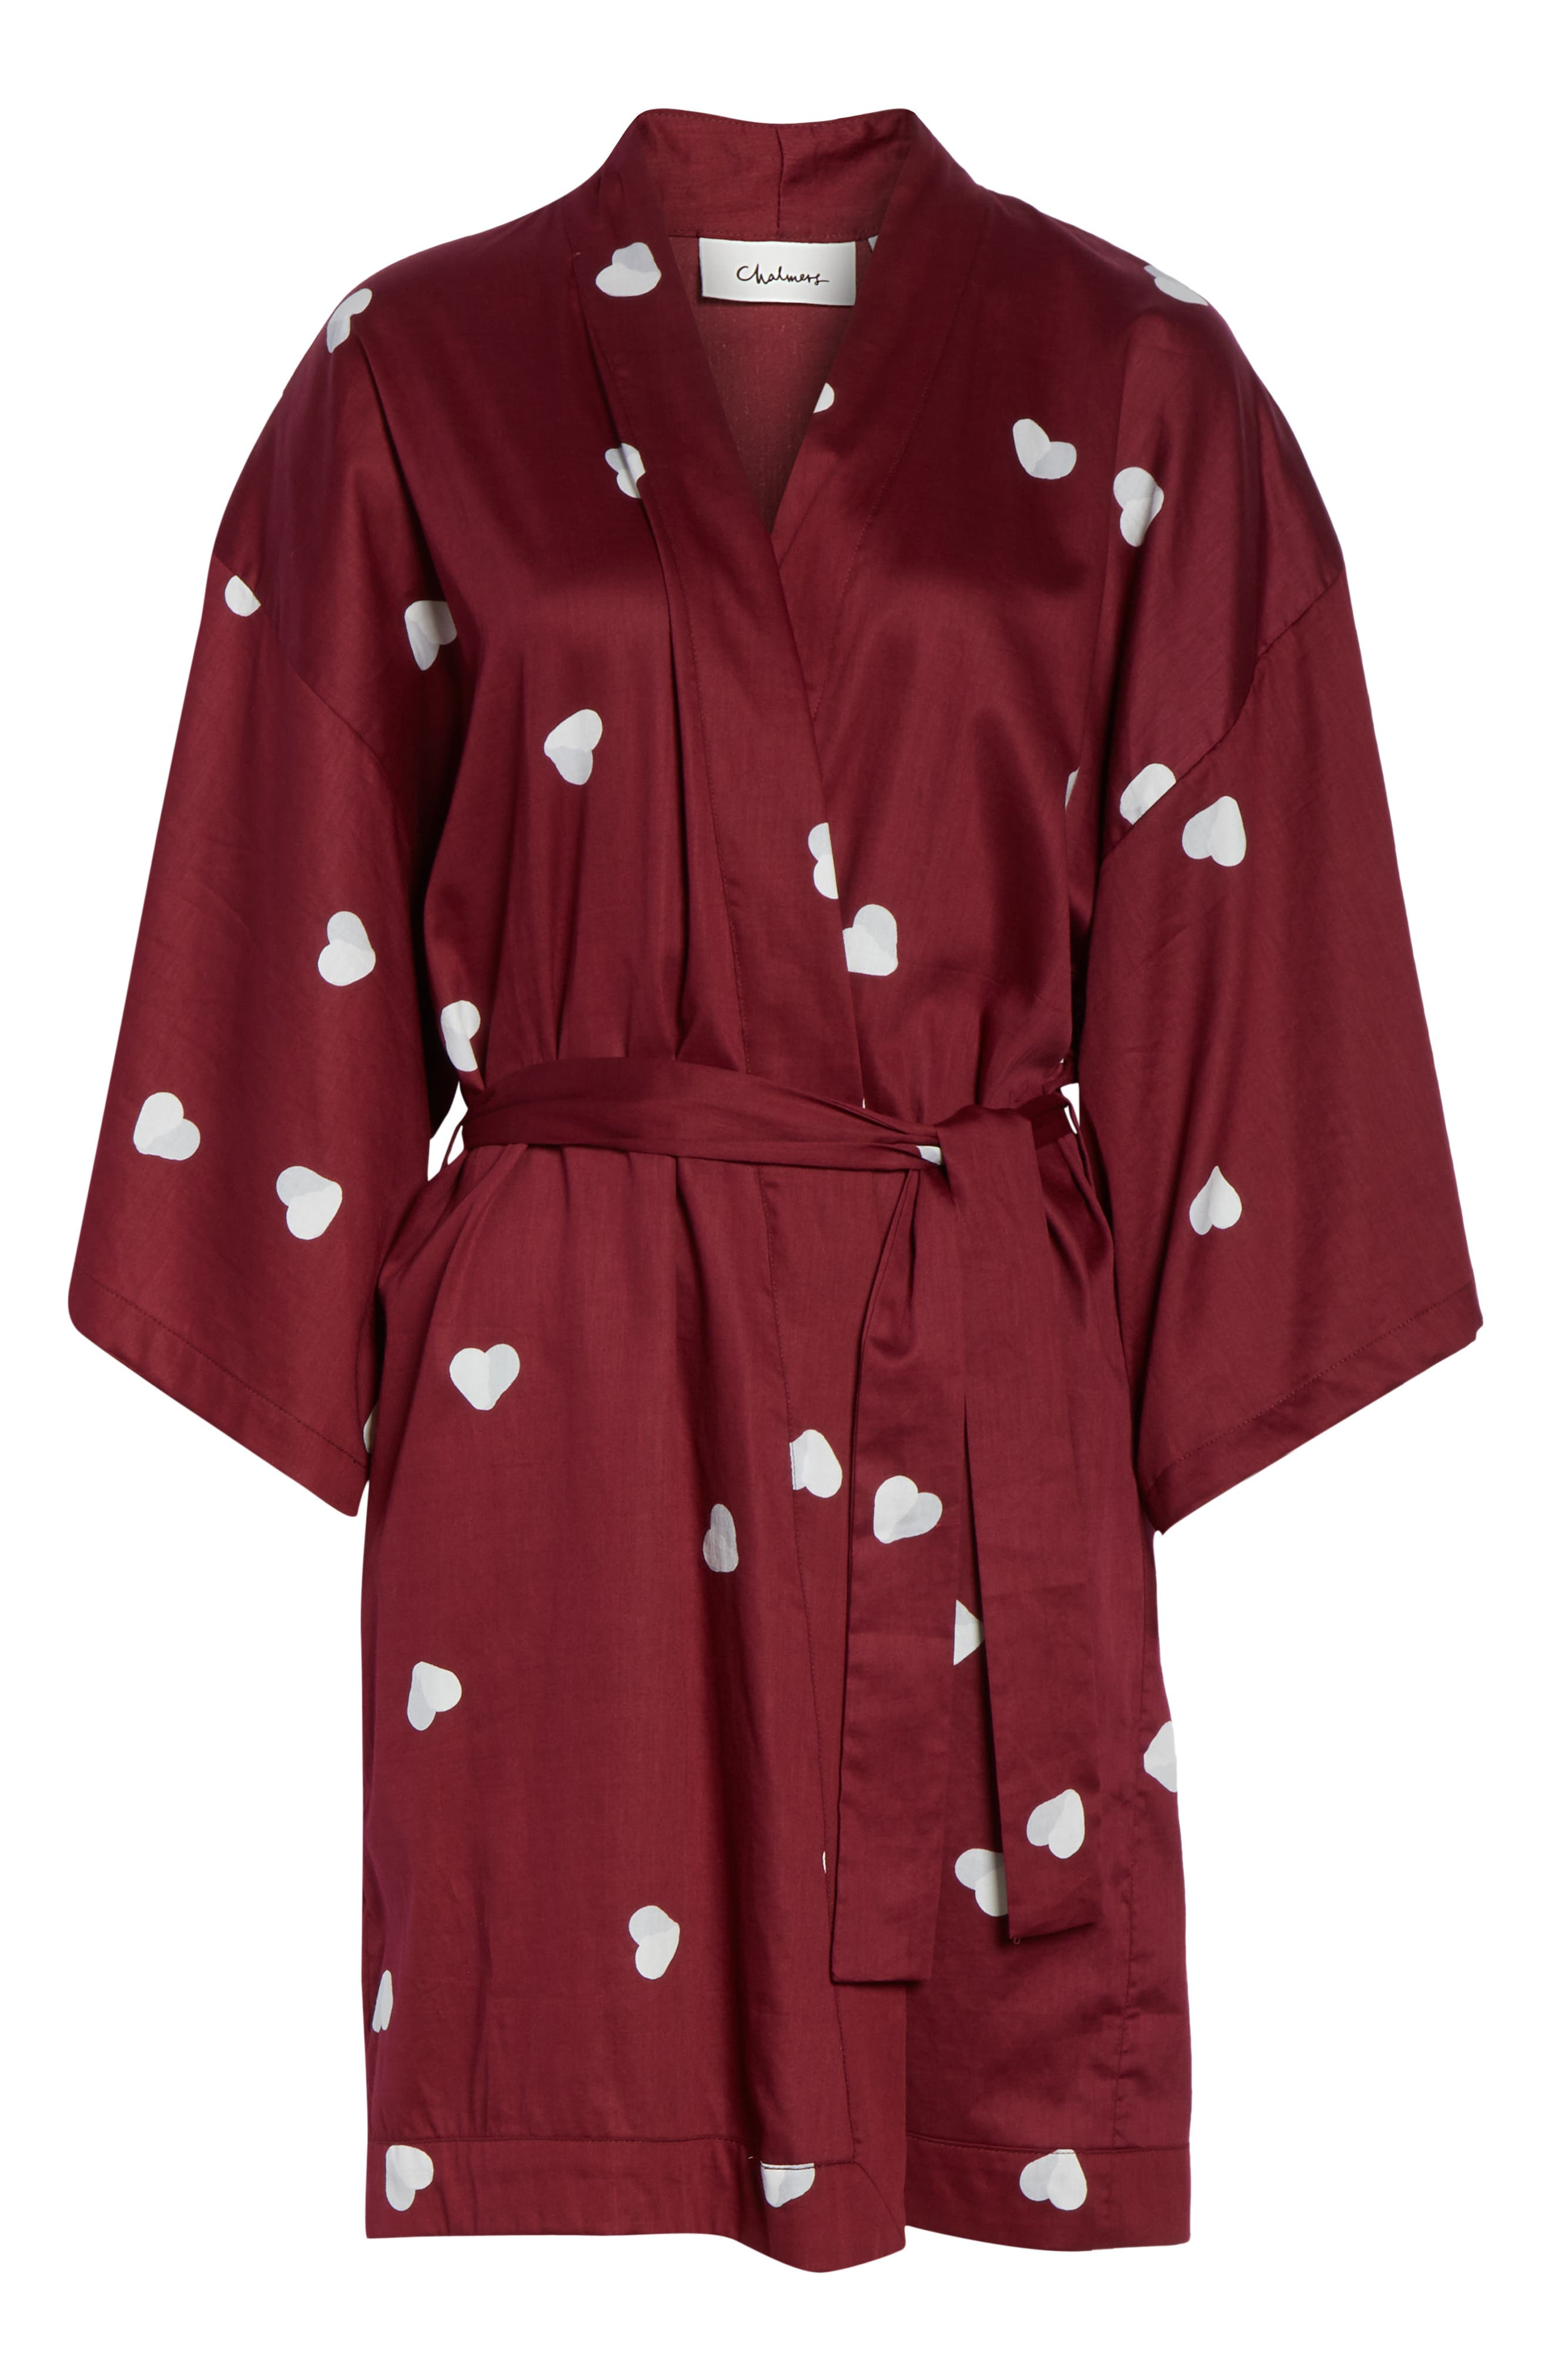 Margaux Short Cotton Robe,                             Alternate thumbnail 6, color,                             LONELY HEARTS MAROON